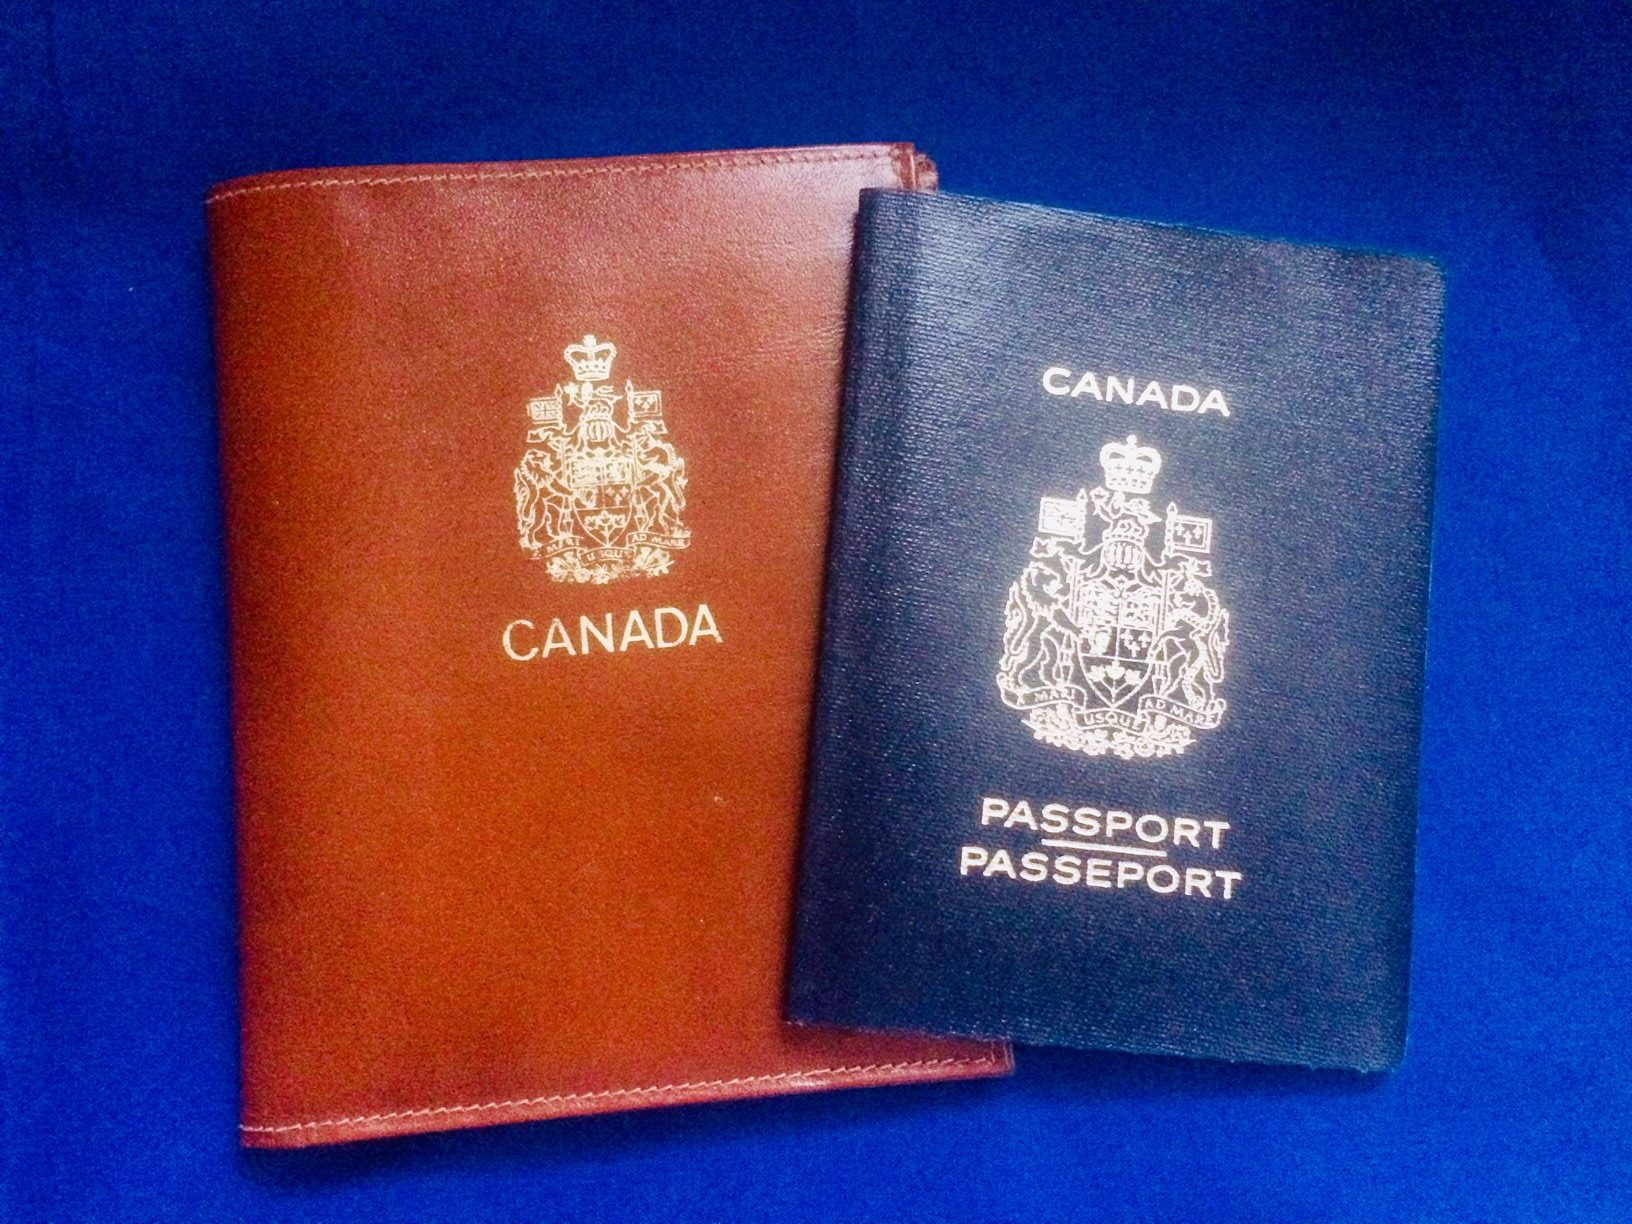 Canadian passport services resuming by mail and by appointment for those travelling within 30 days